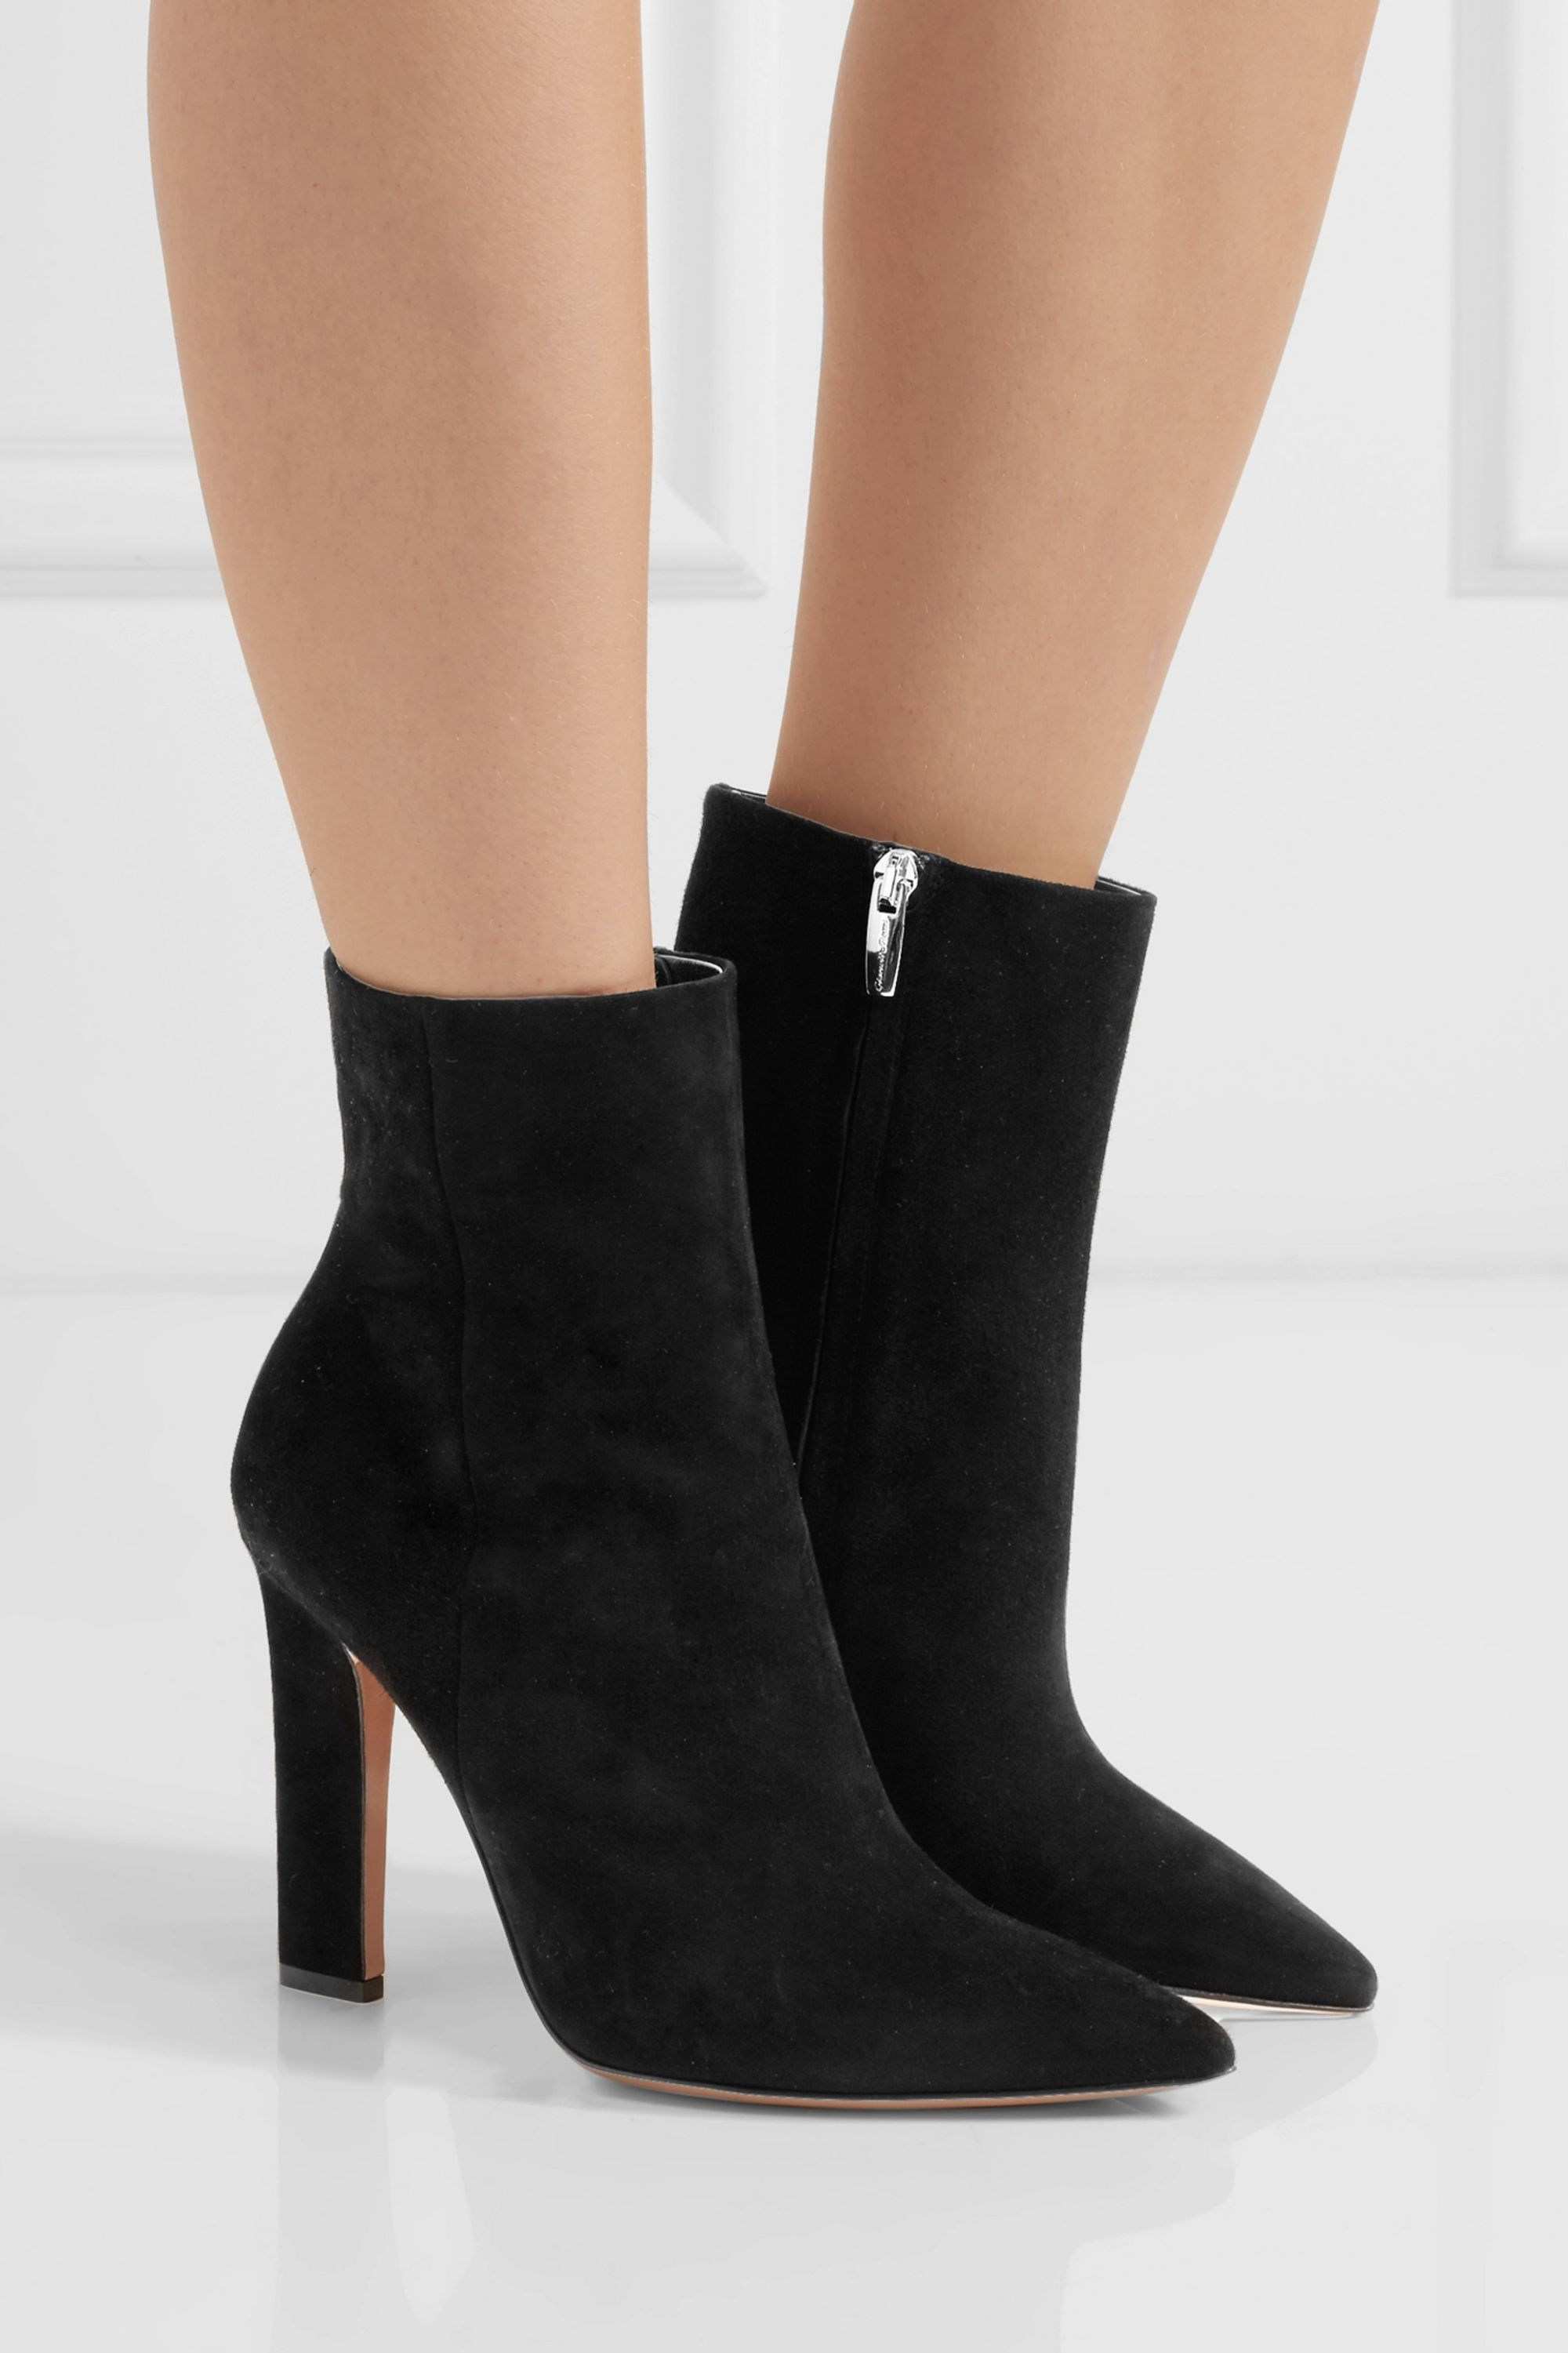 Gianvito Rossi 105 suede ankle boots